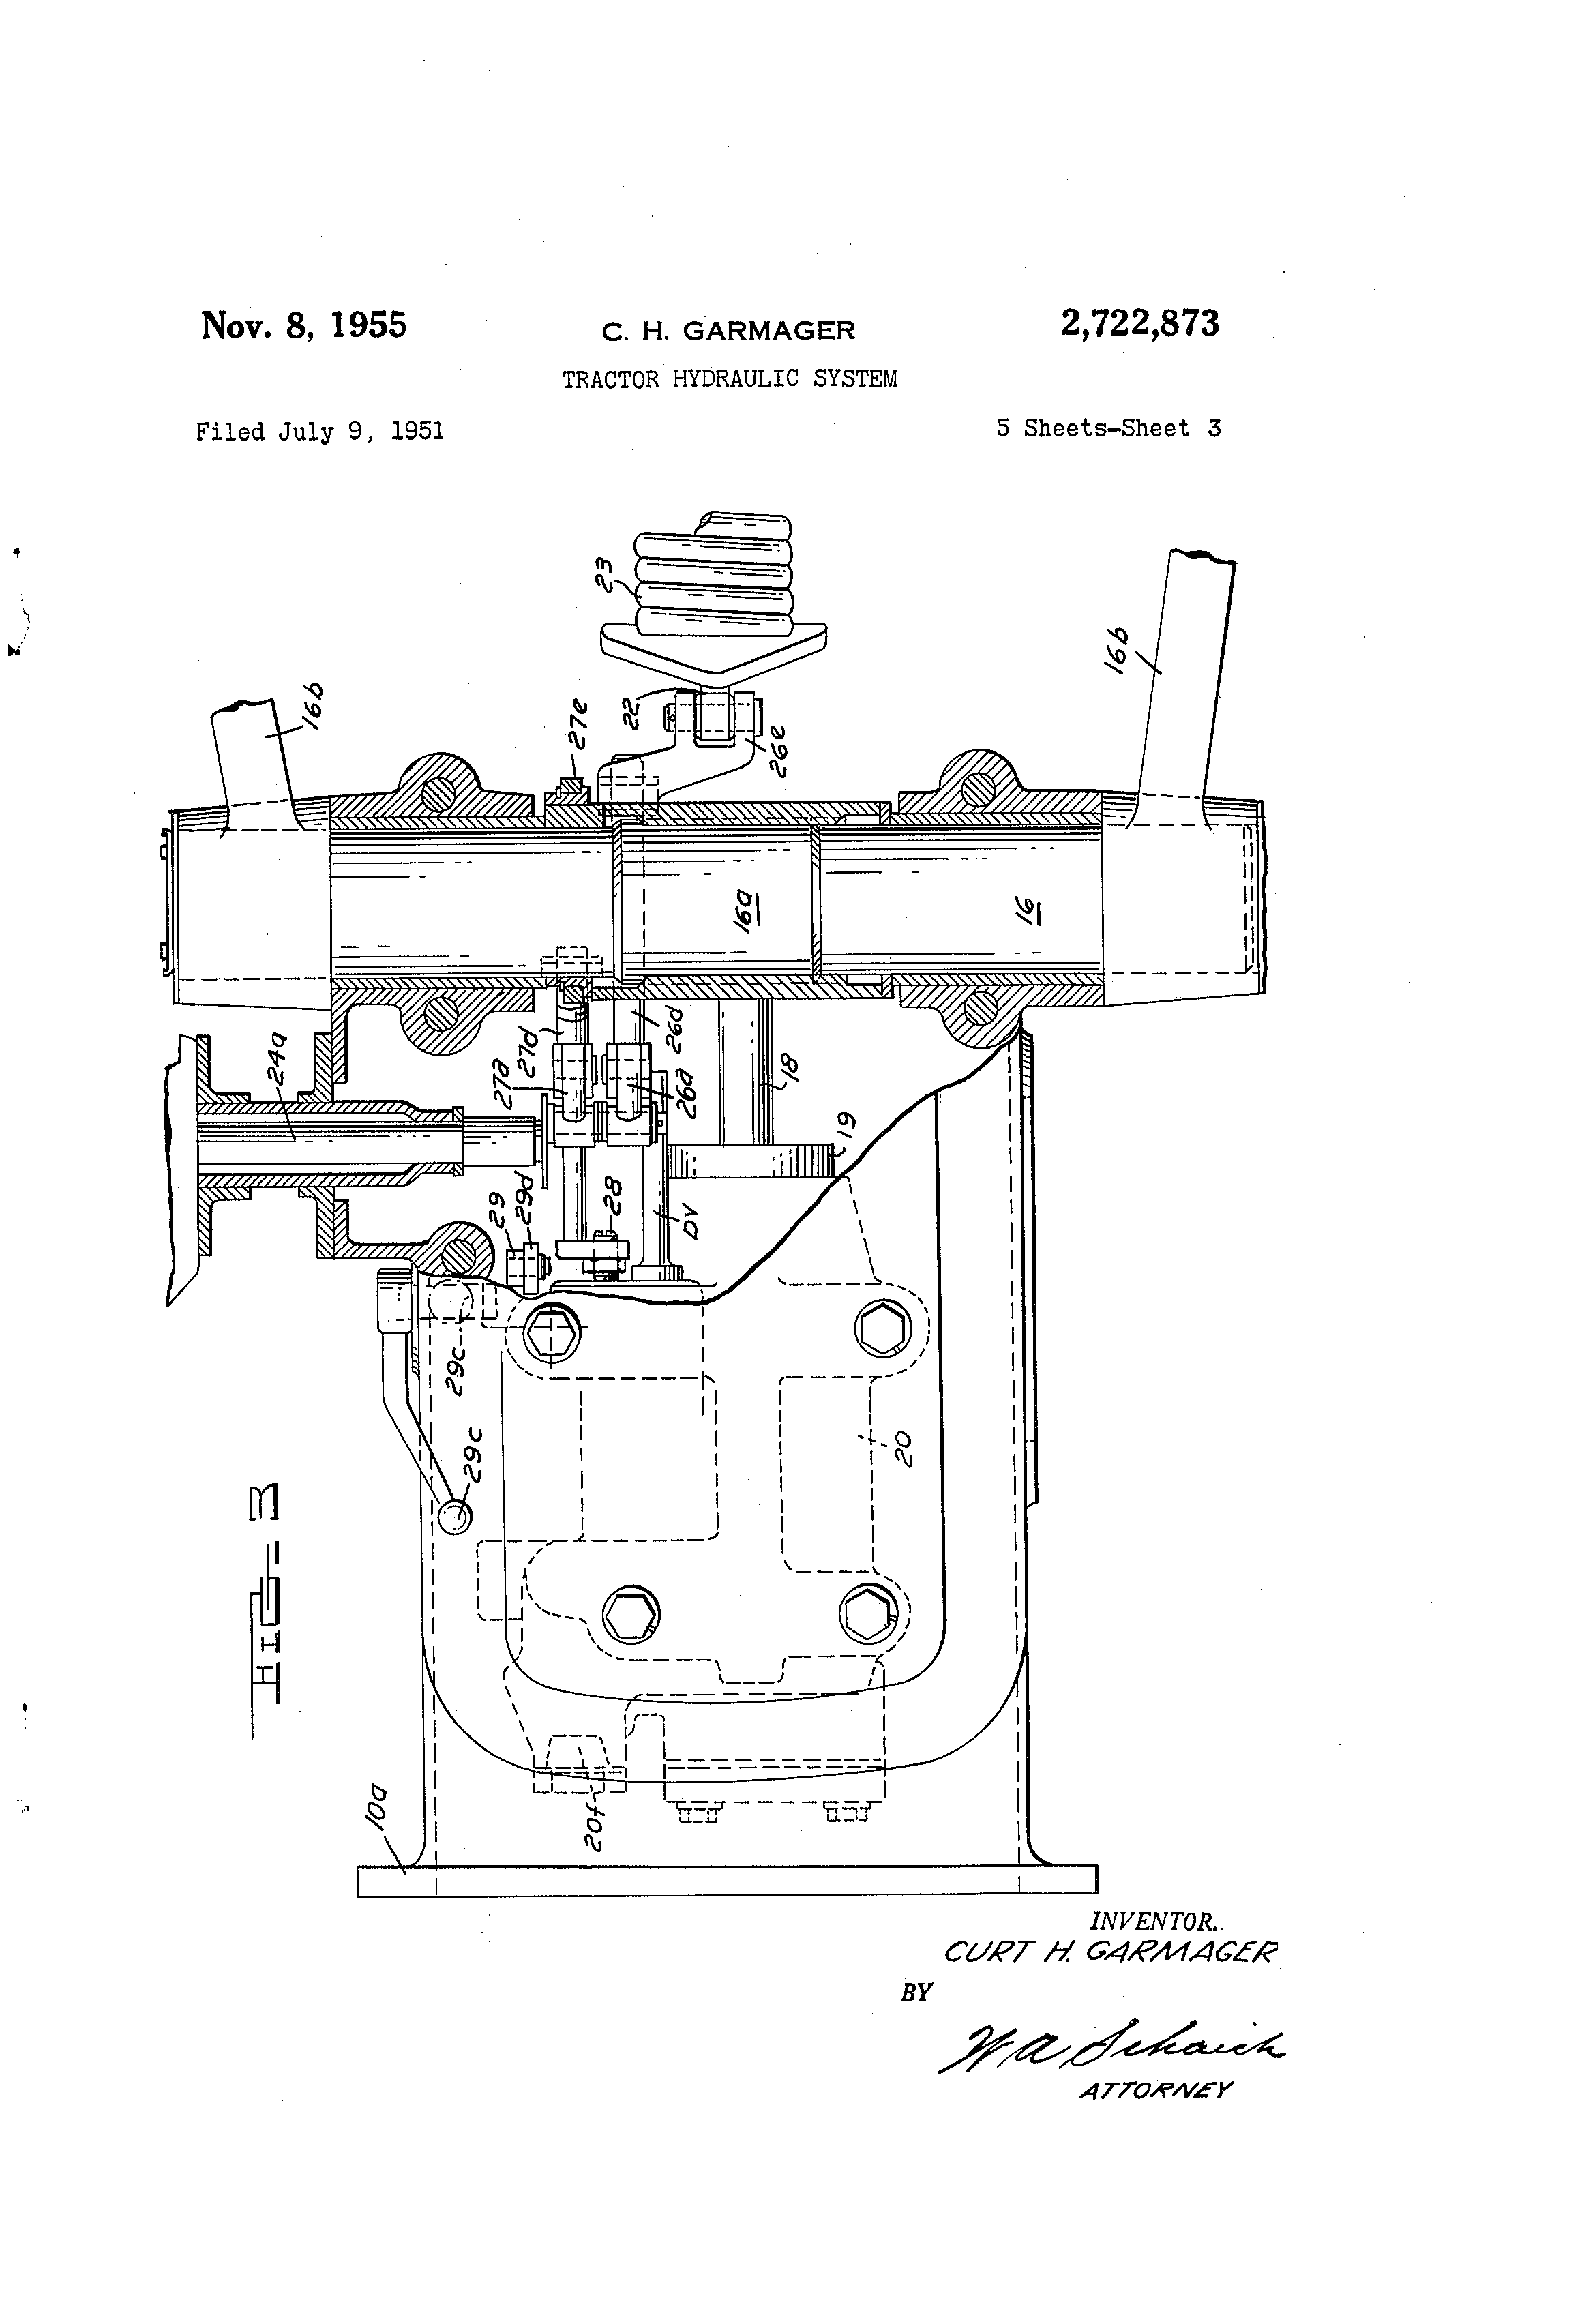 Fordson Dexta And Super Dexta Factory Parts Manual Js Fo P Dexta as well Ford Tractor Generators as well US2722873 additionally Ford tractor transmission likewise Massey Ferguson 135 Wiring Diagram. on ford 5000 tractor parts diagram